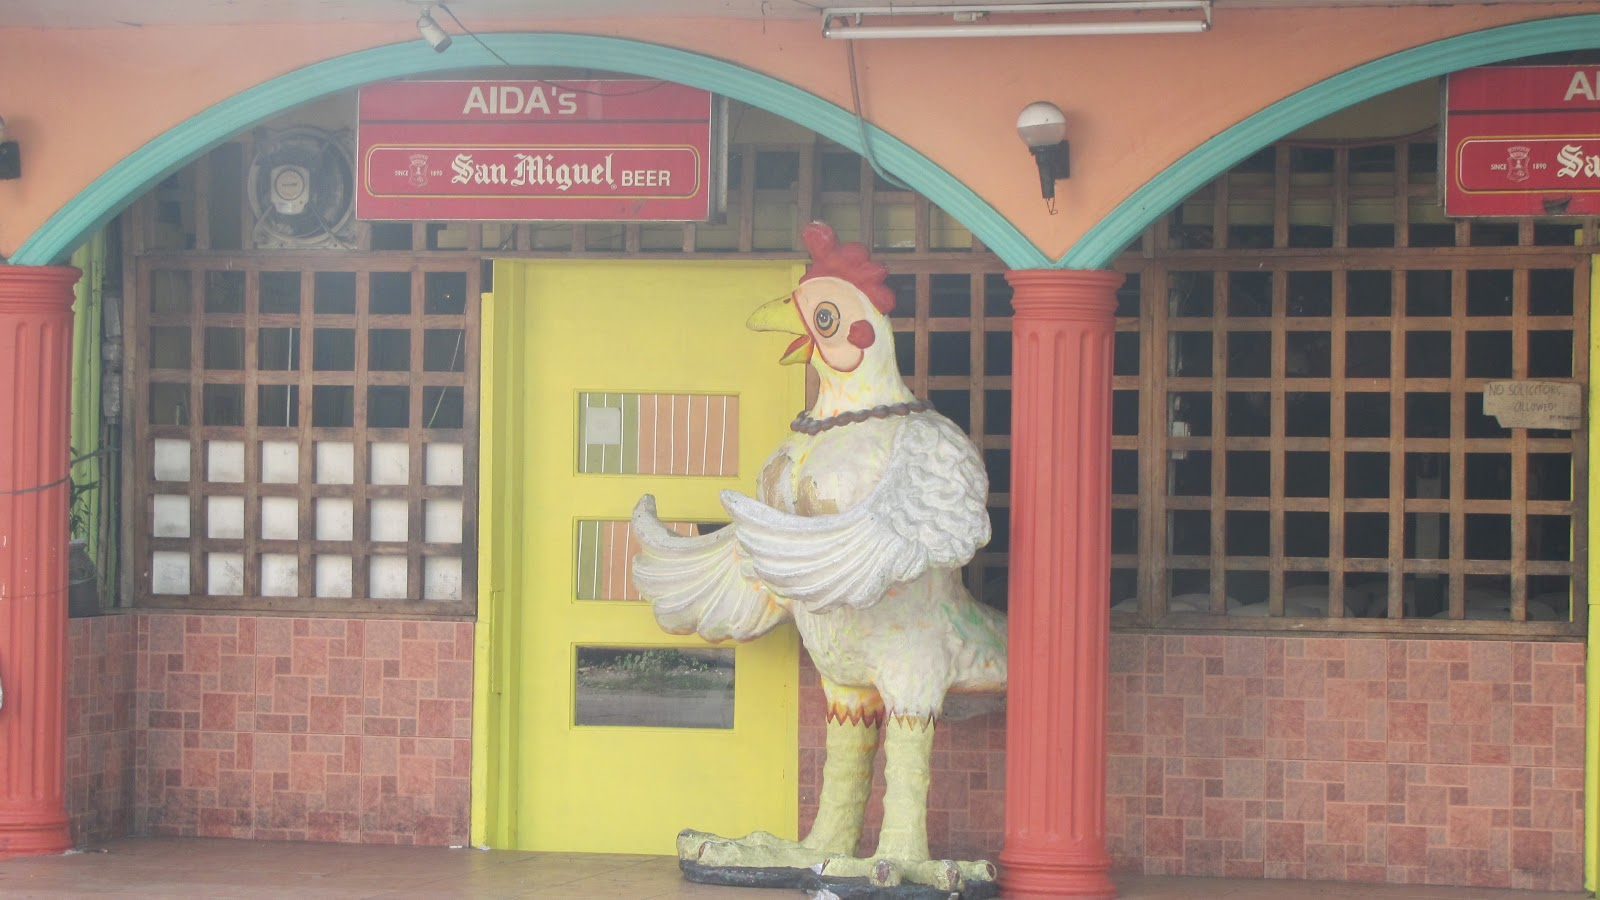 #032eatdrink, food, bacolod, bacolod chicken, aida's chicken